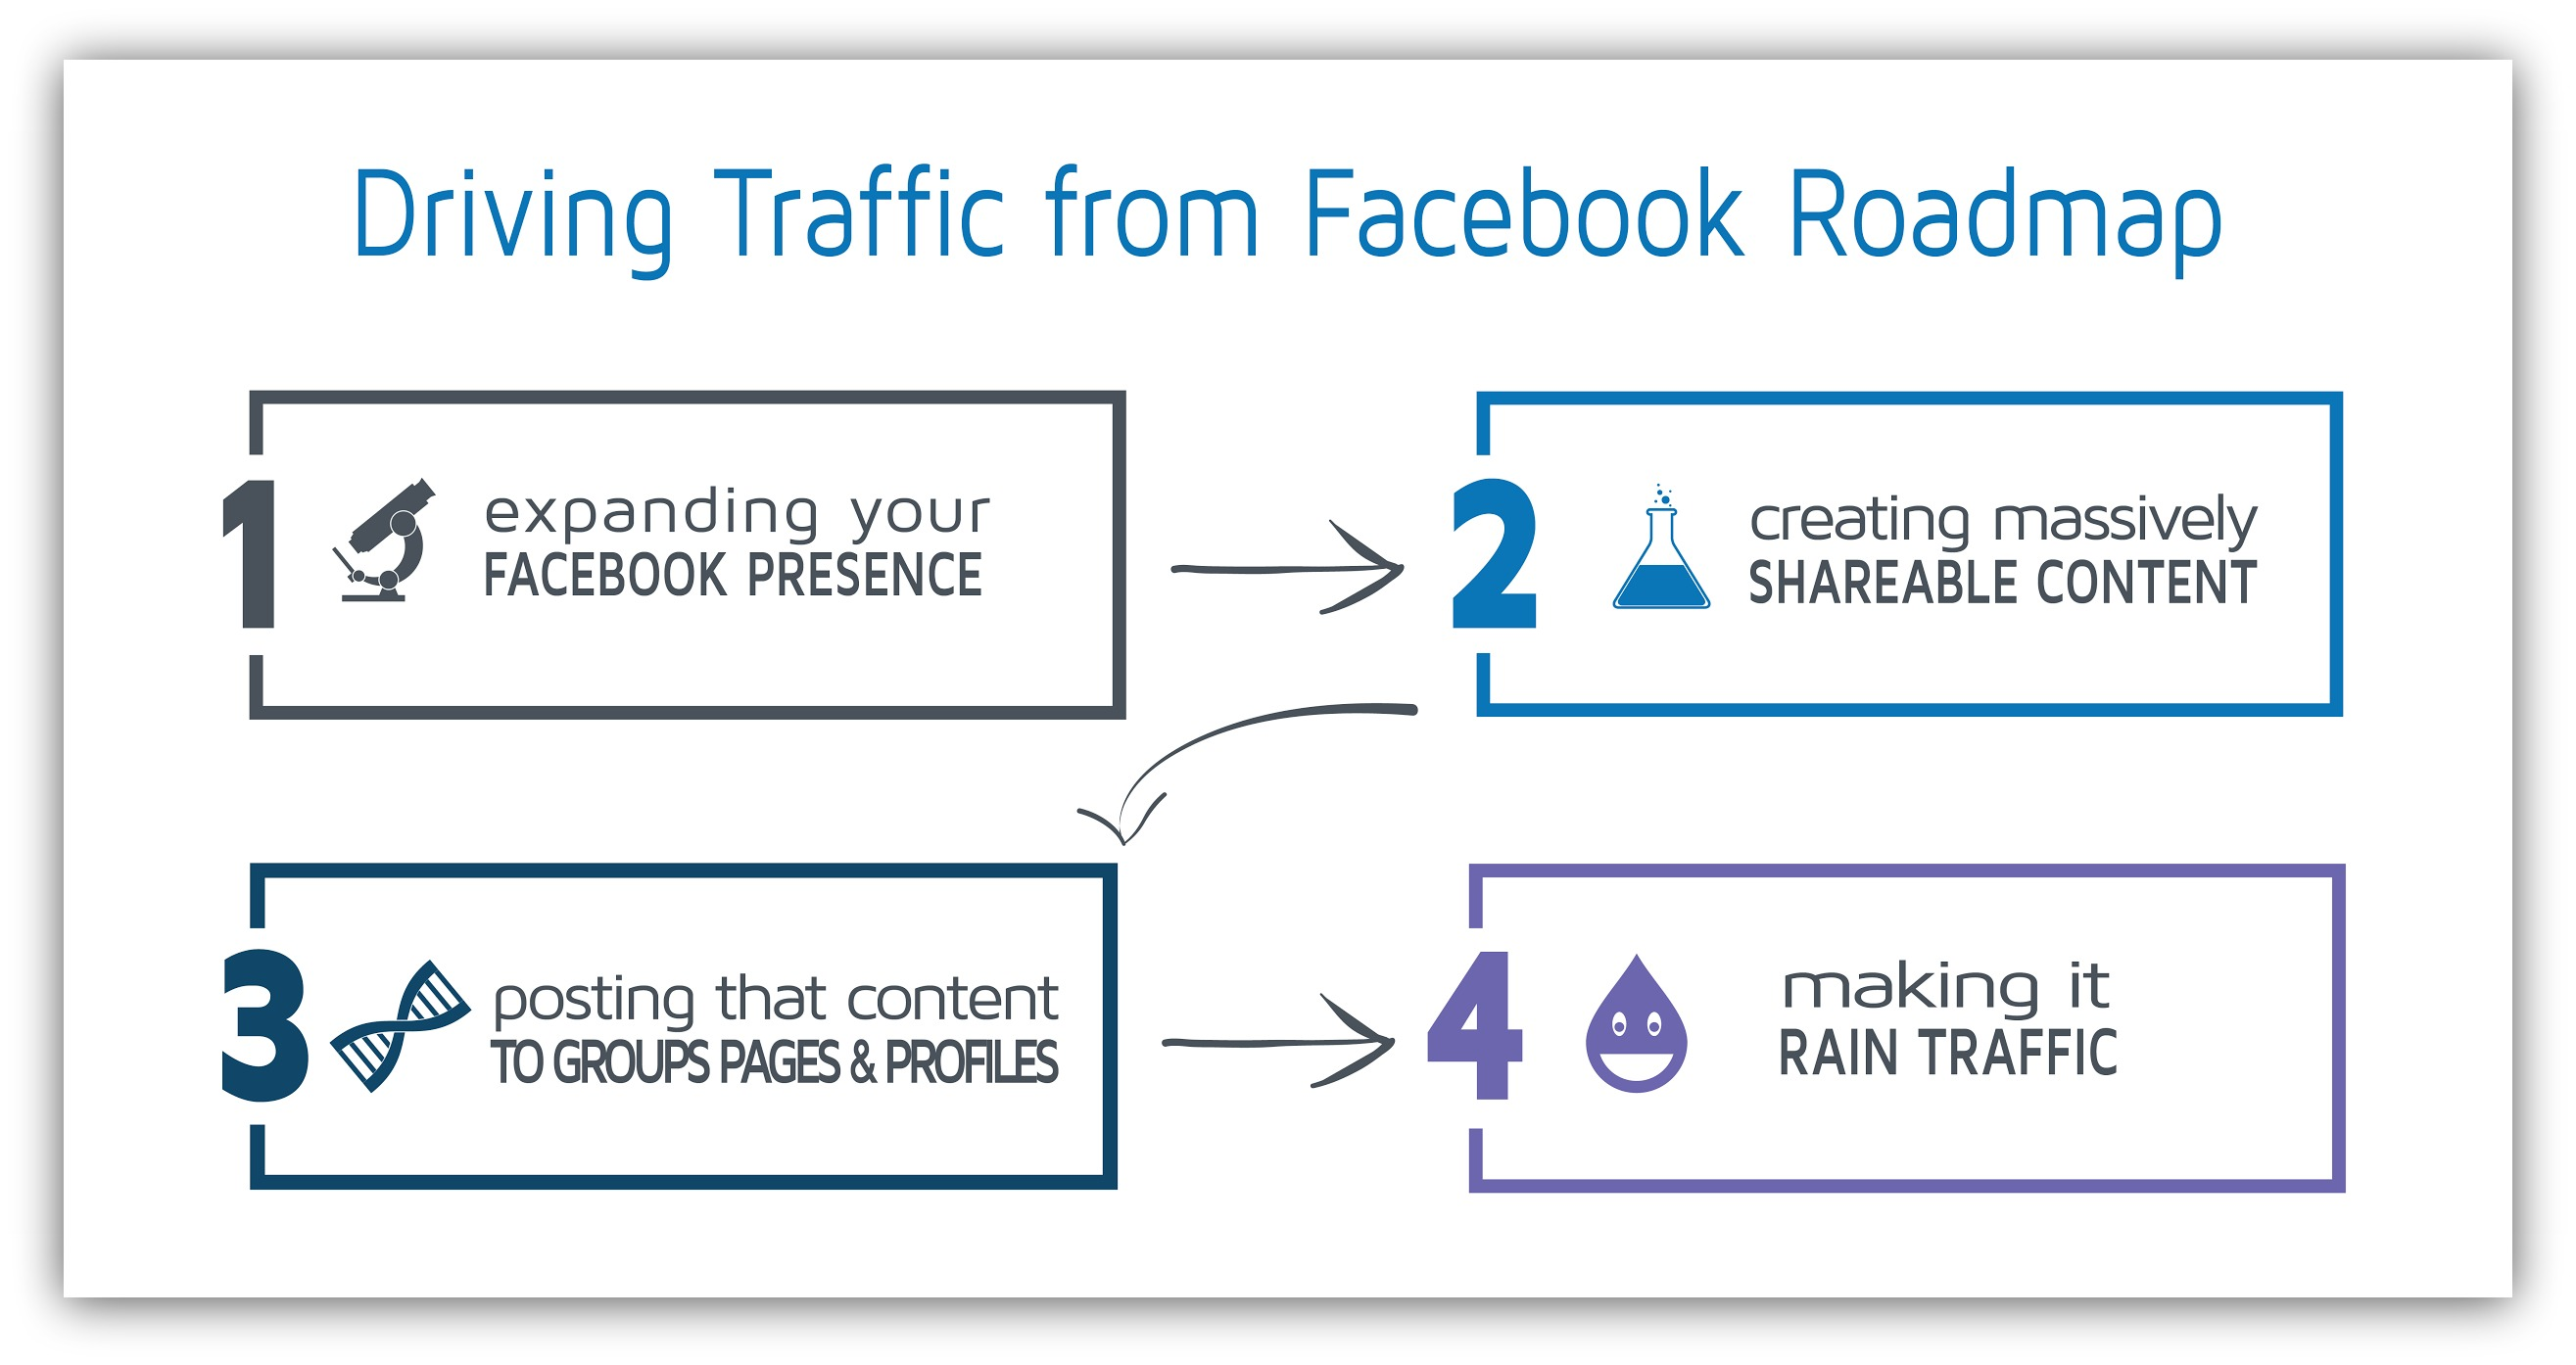 Roadmap for driving traffic from Facebook